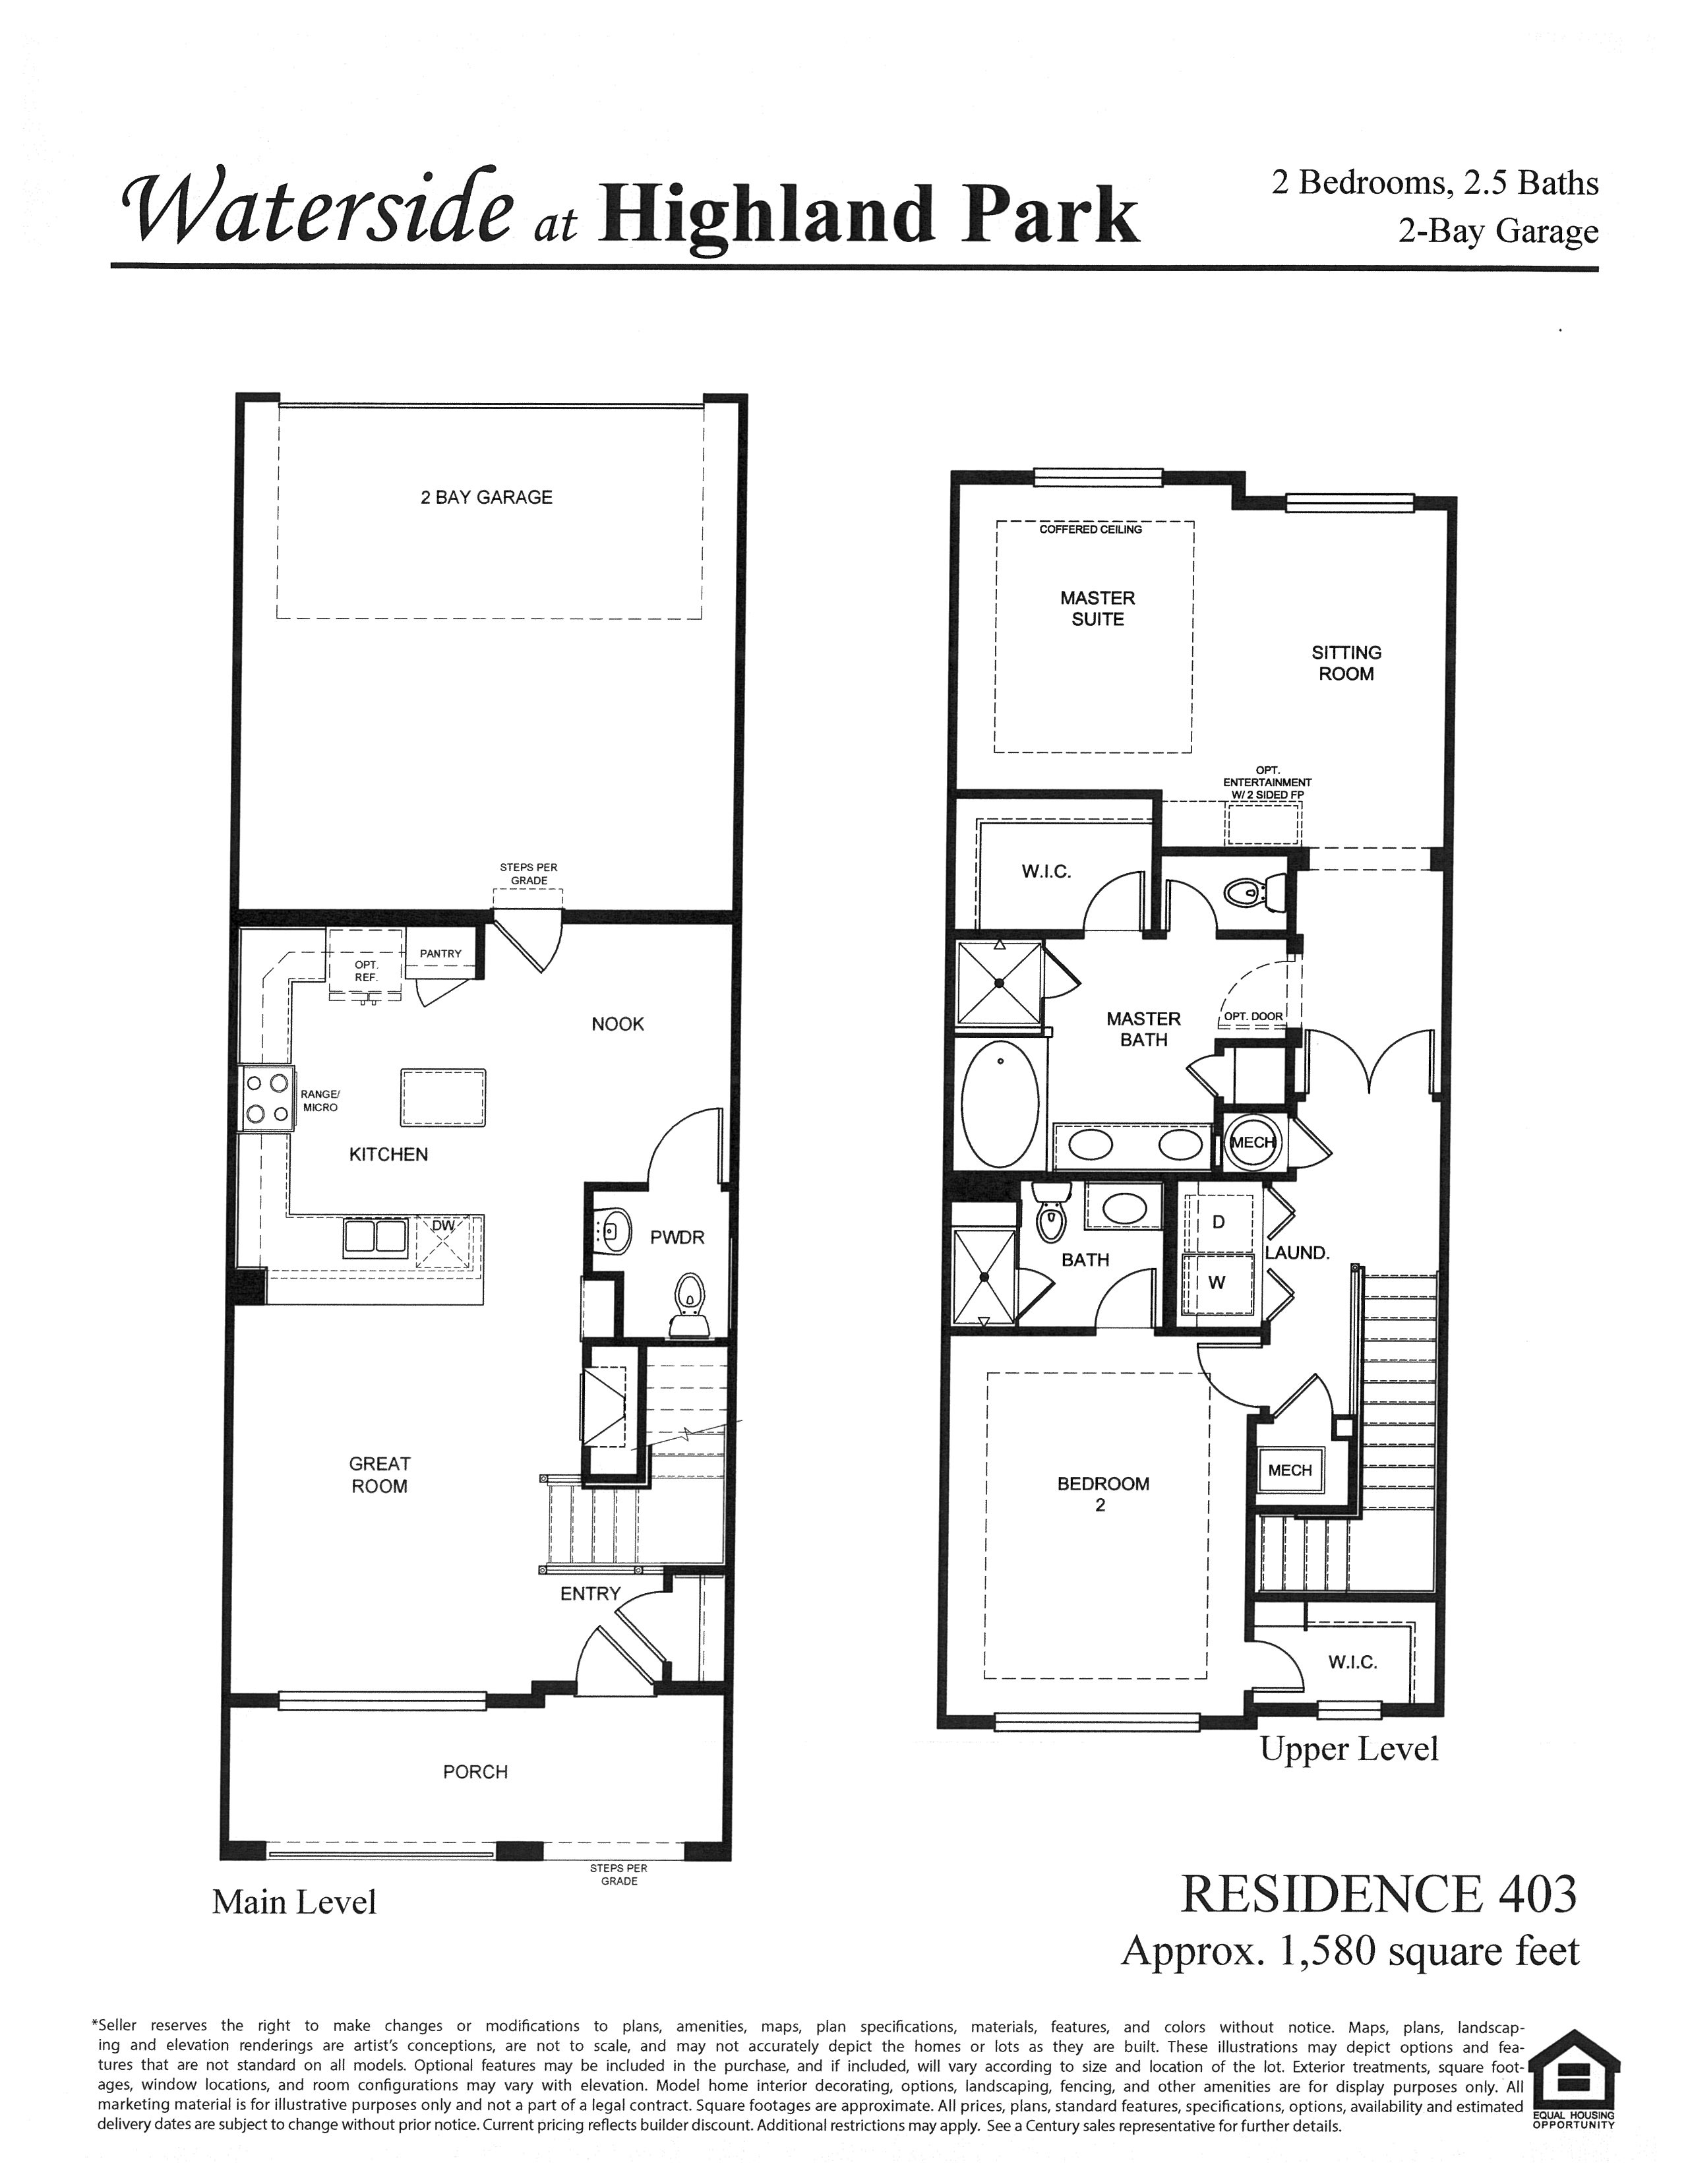 Waterside at Highland Park Floor Plan Residence 403 in Centennial, CO